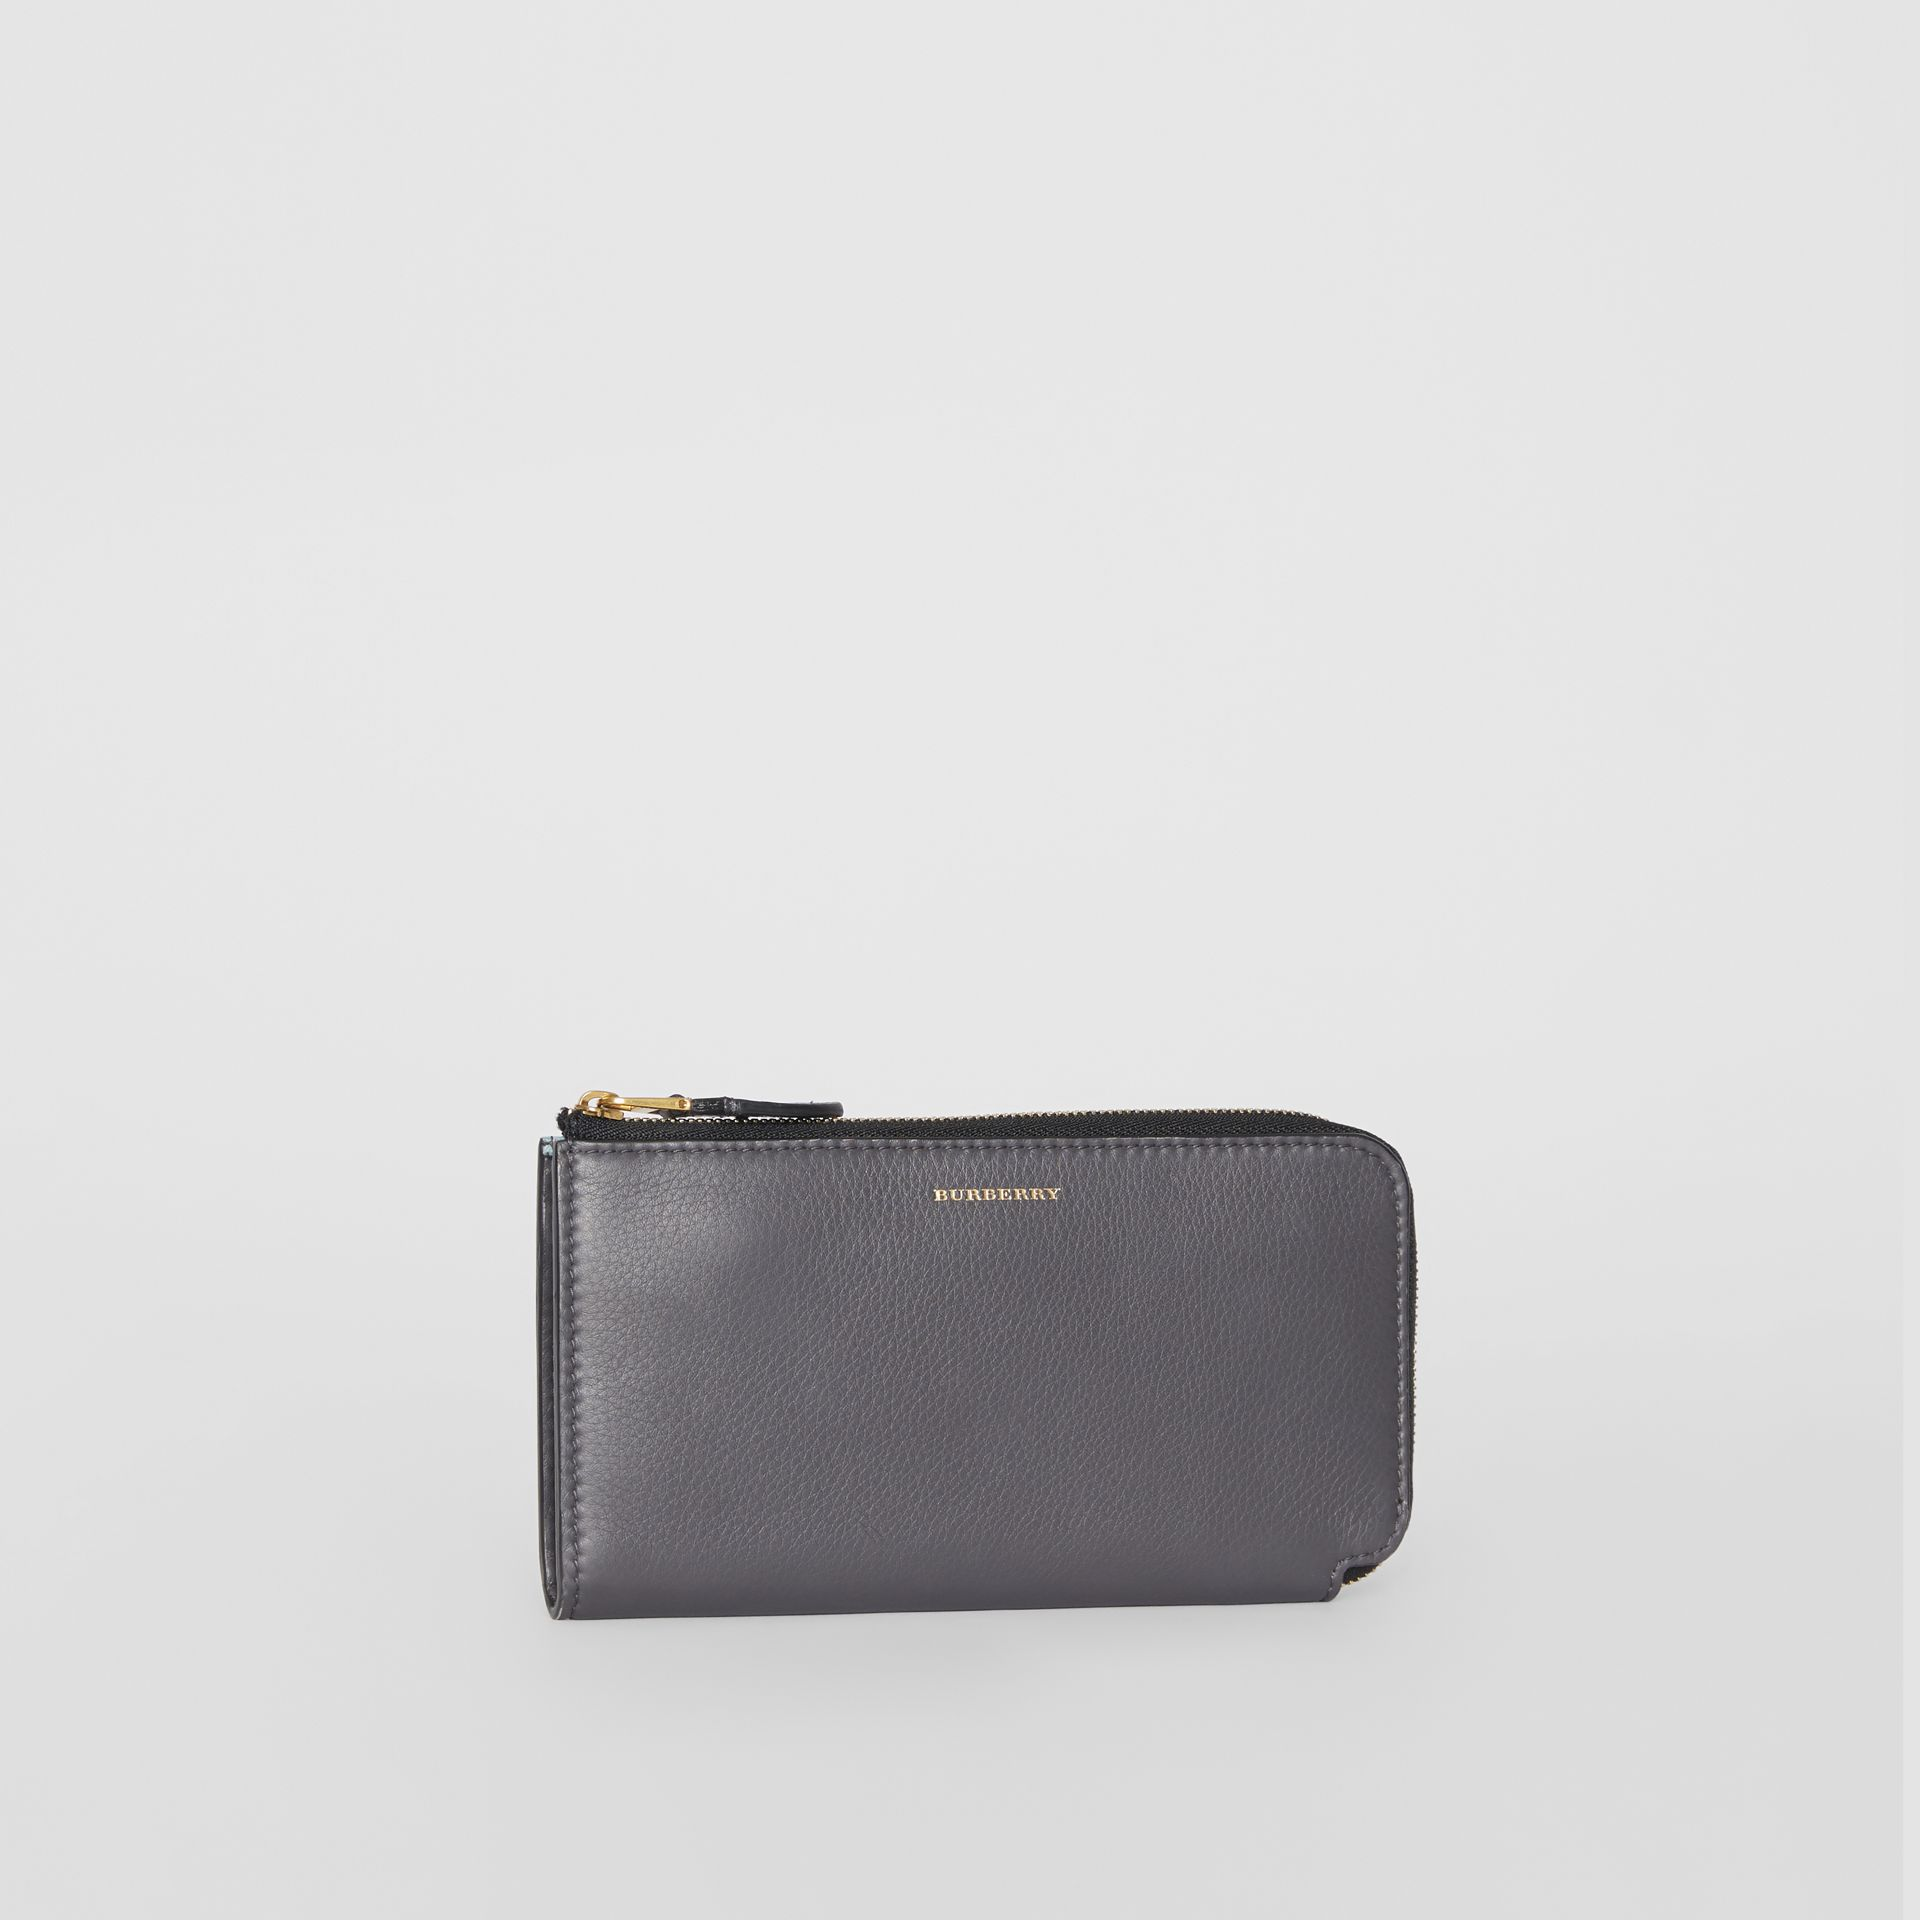 Two-tone Leather Ziparound Wallet and Coin Case in Charcoal Grey - Women | Burberry United Kingdom - gallery image 5